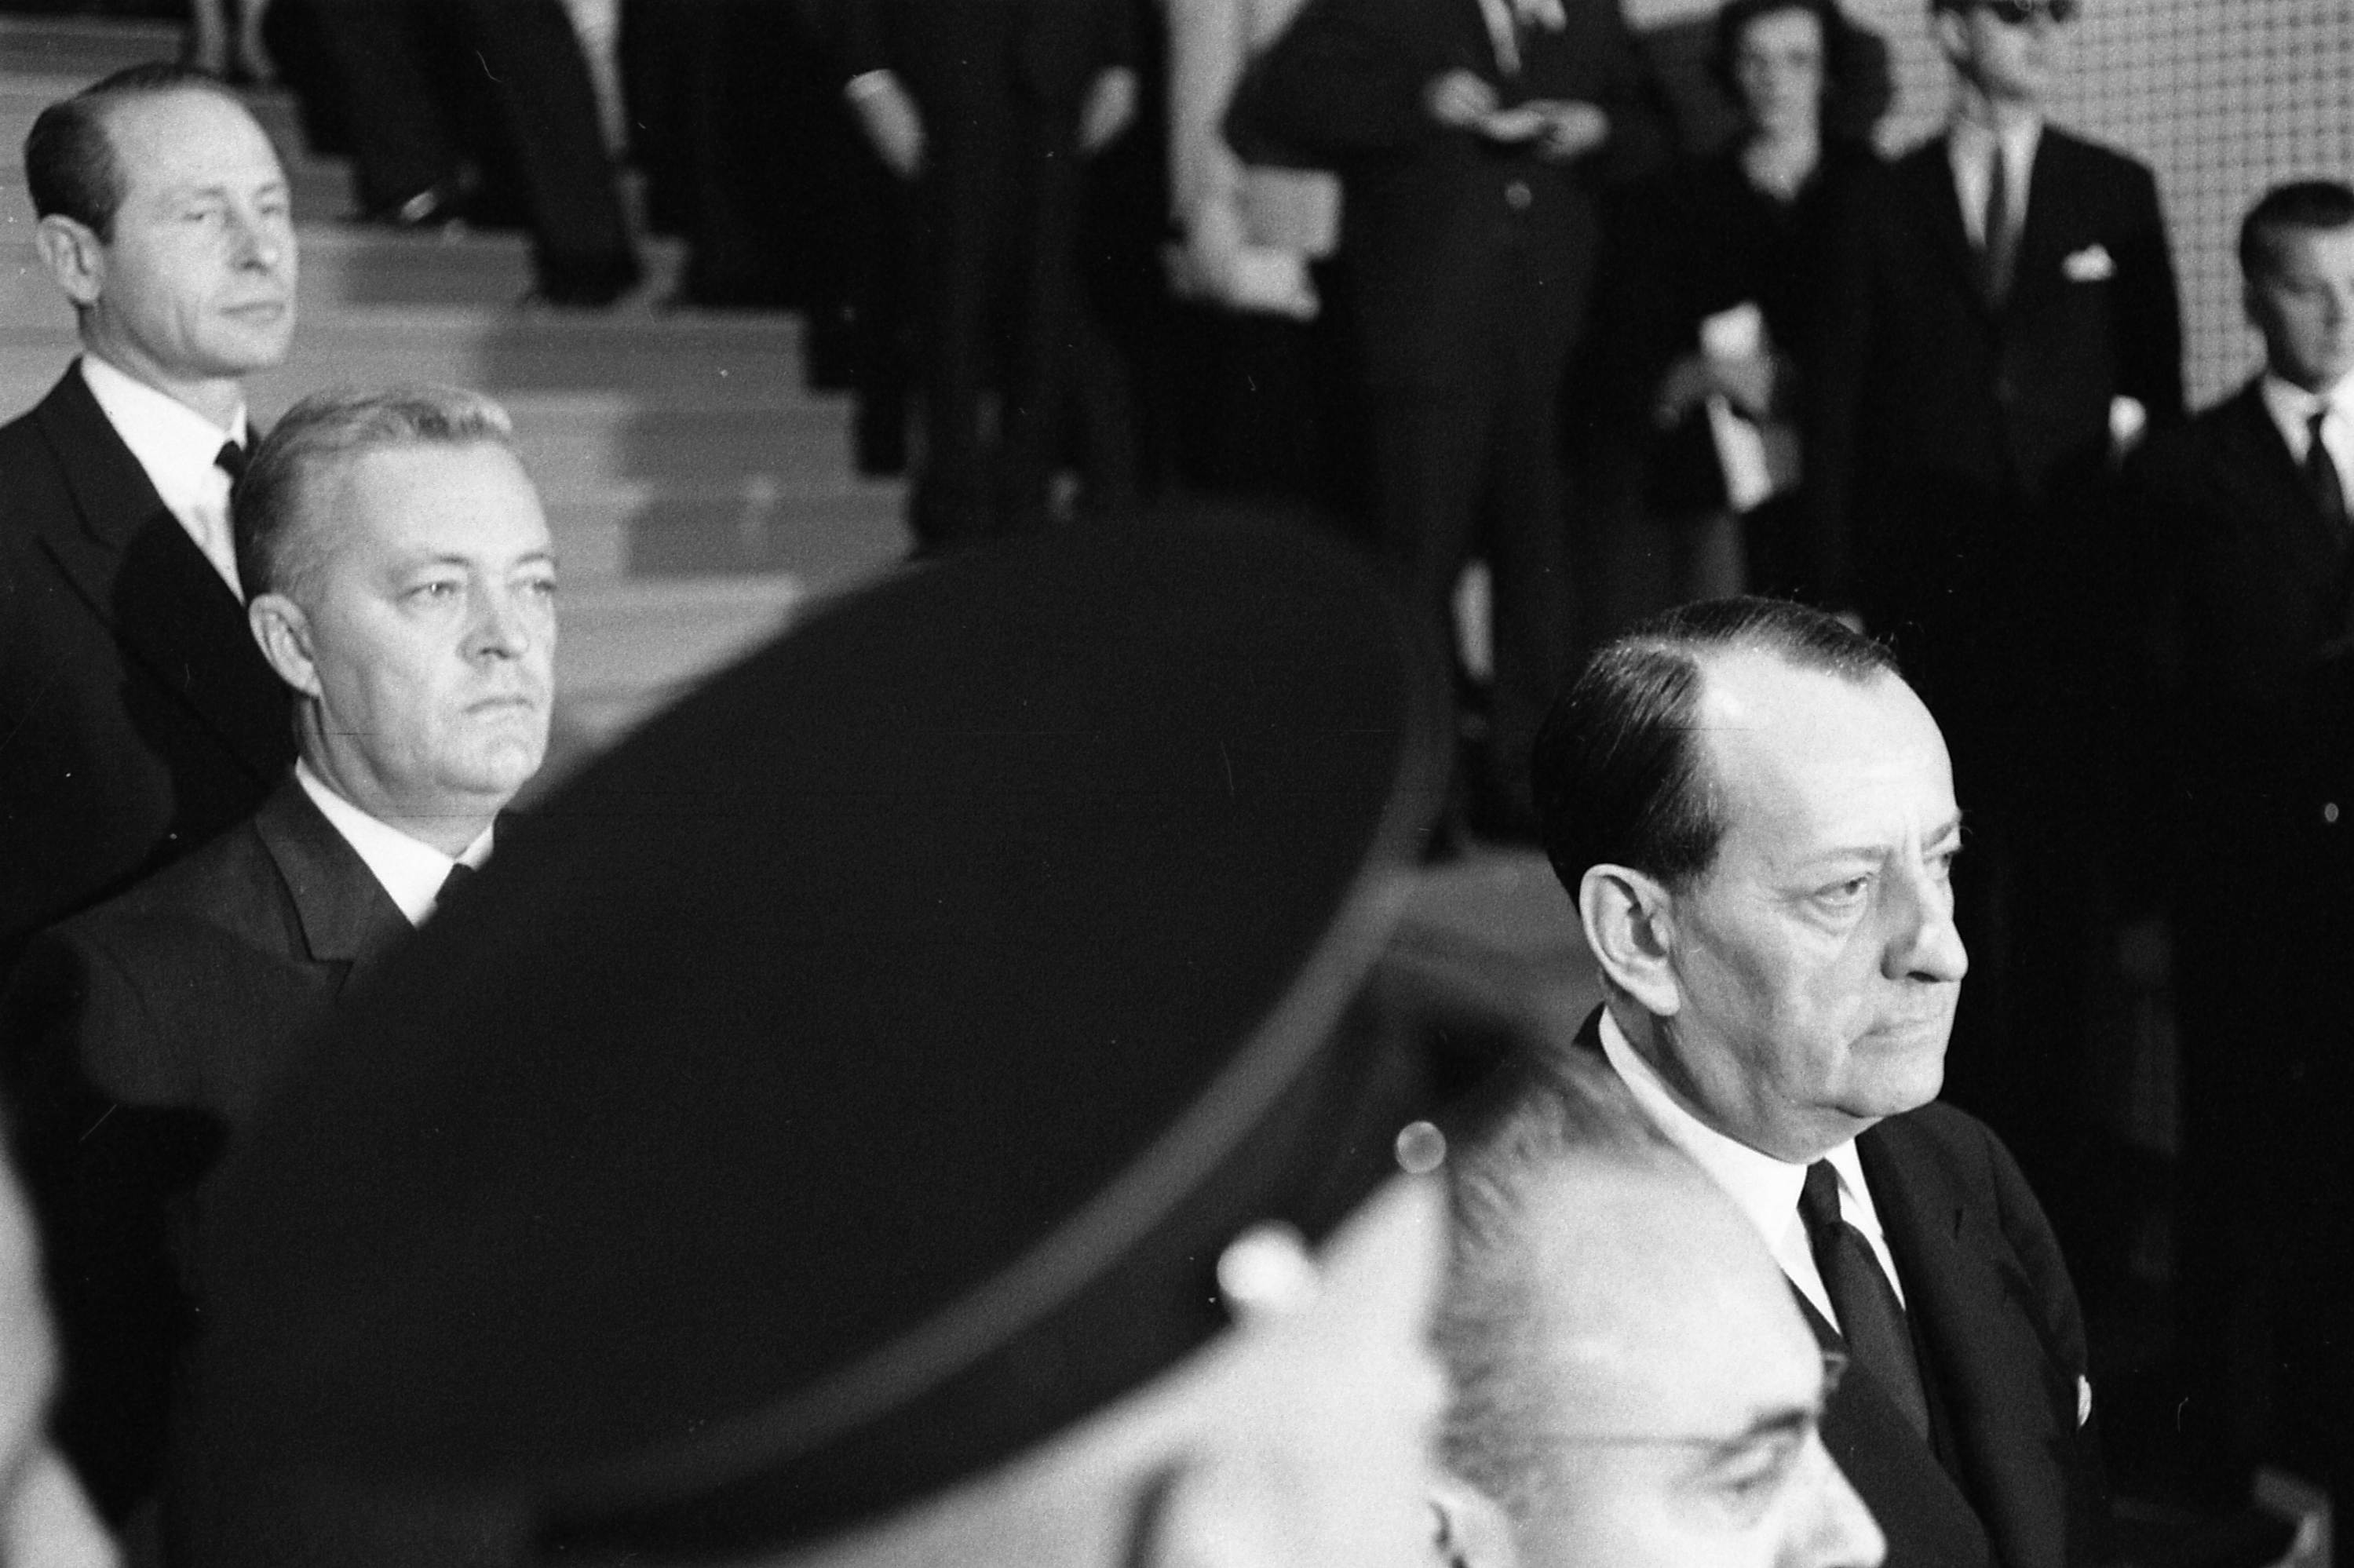 Three men in suits descend a staircase. A military officer's hat obscures most of the shot.